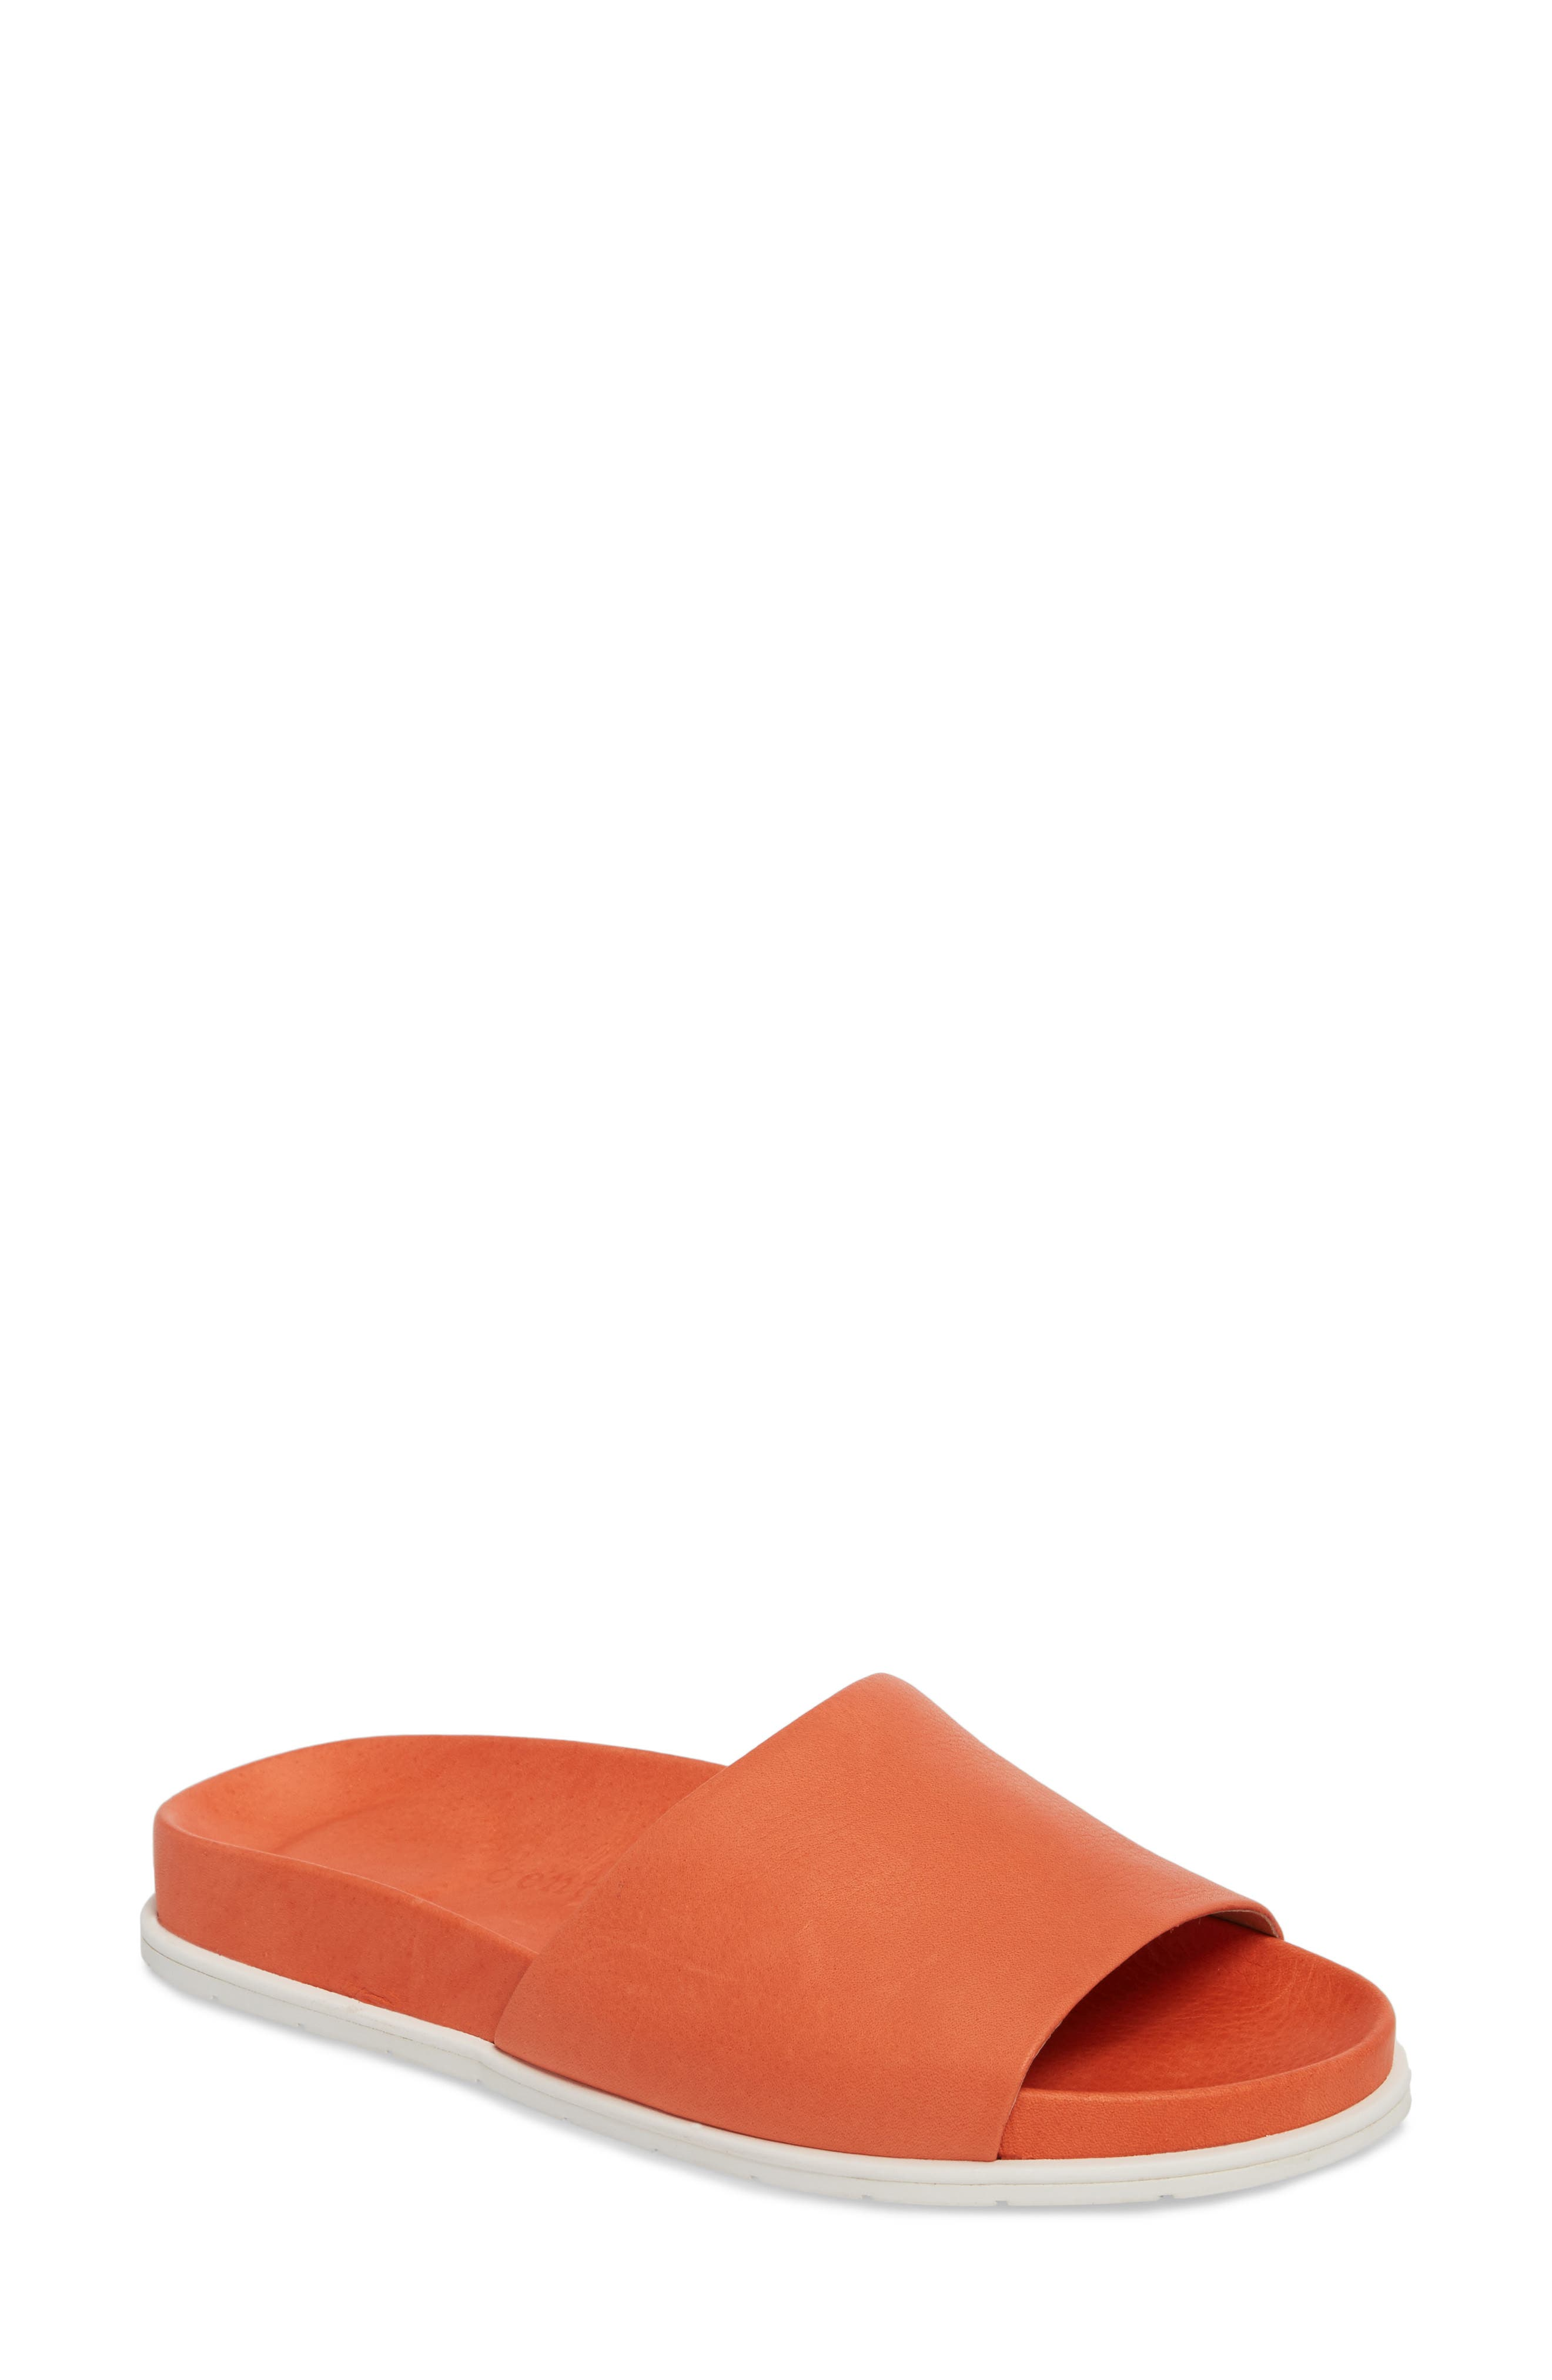 by Kenneth Cole Iona Slide Sandal,                             Main thumbnail 1, color,                             Orange Leather